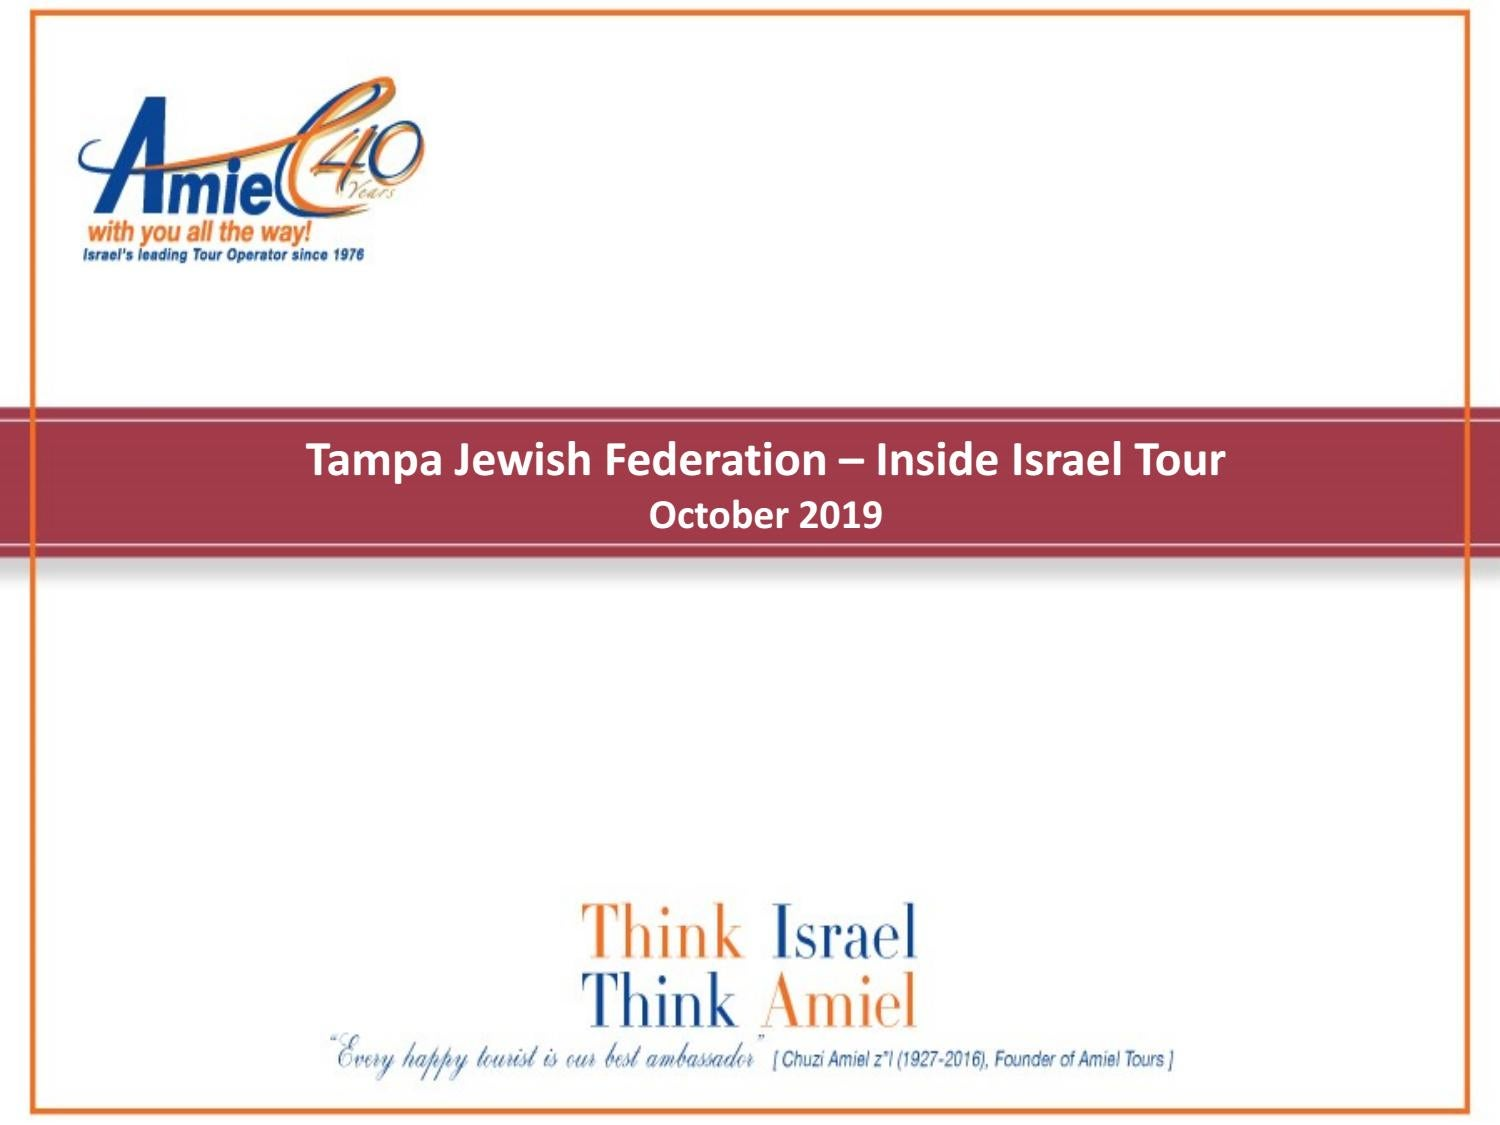 Tampa Jewish Federation | Inside Israel Tour October 2019 by